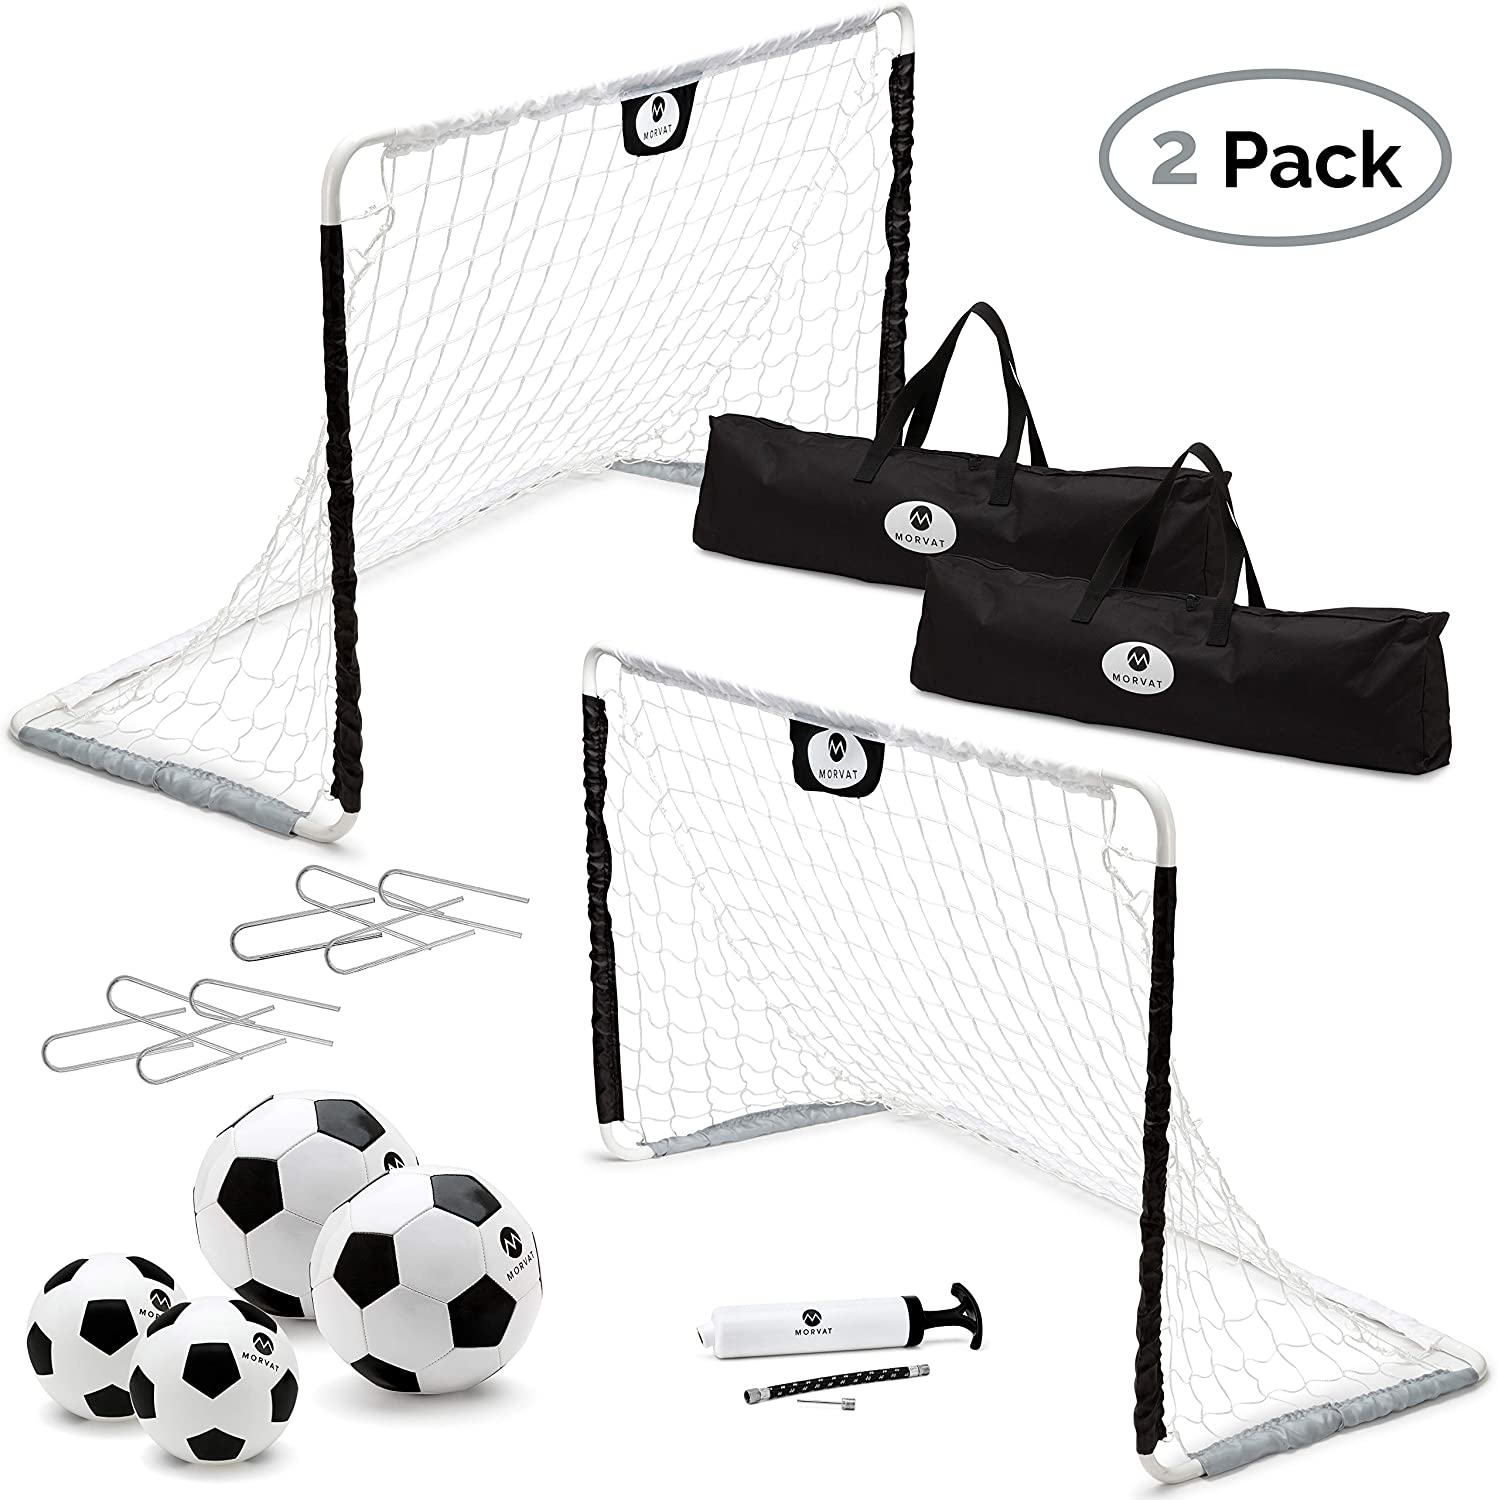 Morvat Soccer Goal Set for Backyard, Outdoor Toys Soccer Net, Soccer Goals for Backyard, Soccer Accessories, Pop Up Soccer Goals